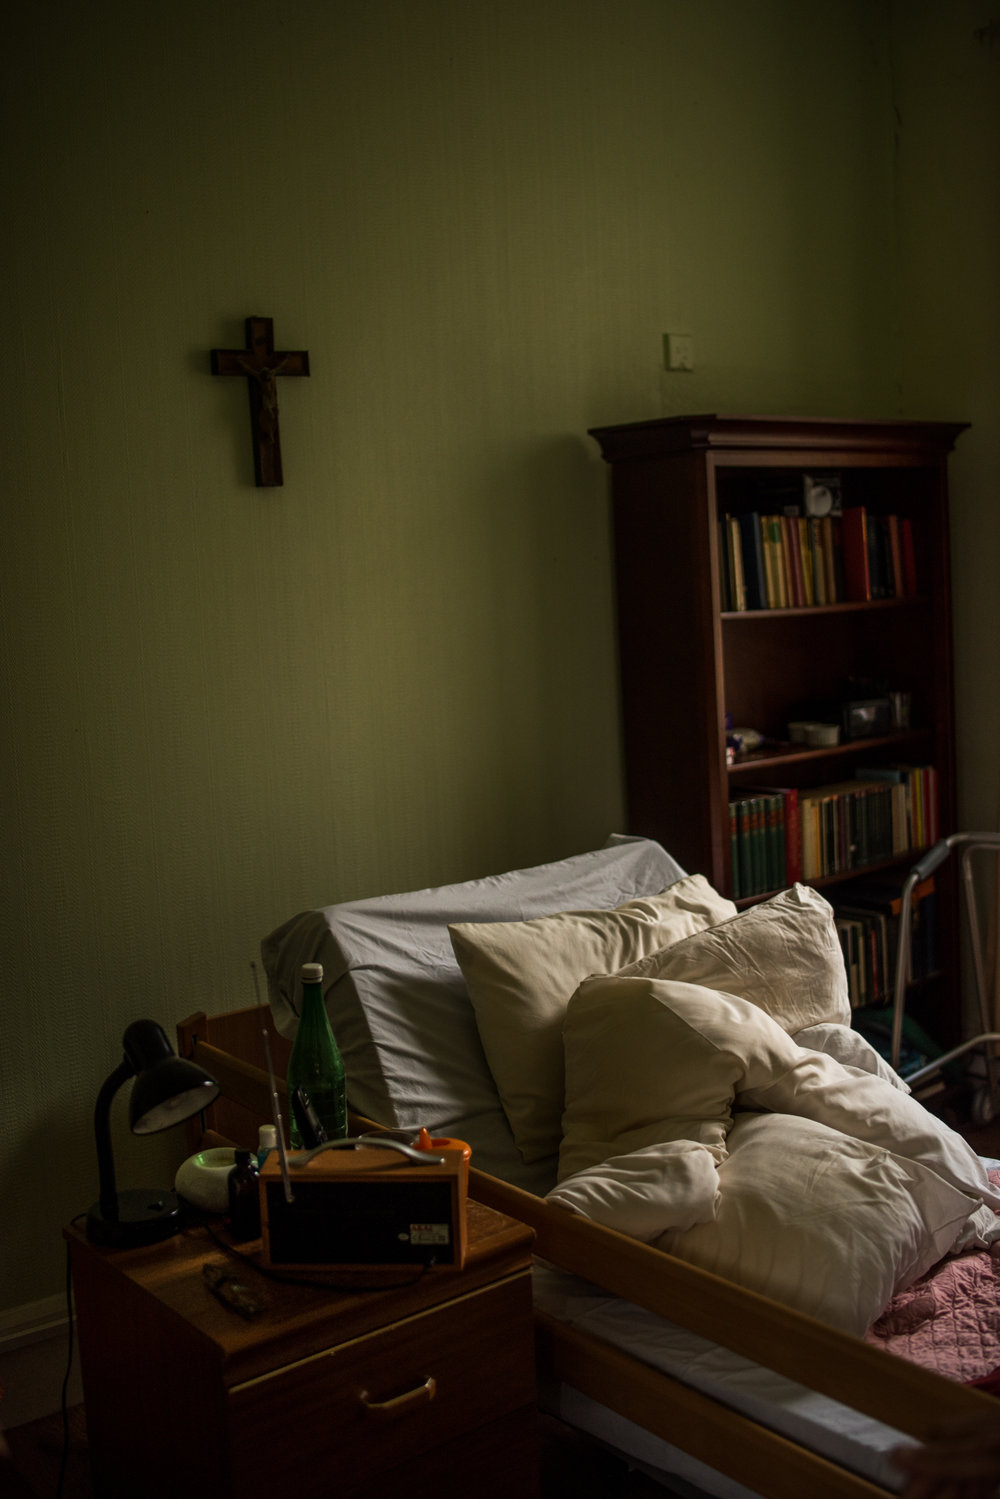 A bed in the infirmary, still warm from the previous Abbot who was buried the day before I got to the Abbey. His personal items are on the table next to the bed and the room smells of mouthwash. Belmont Abbey, Hereford, England 2016